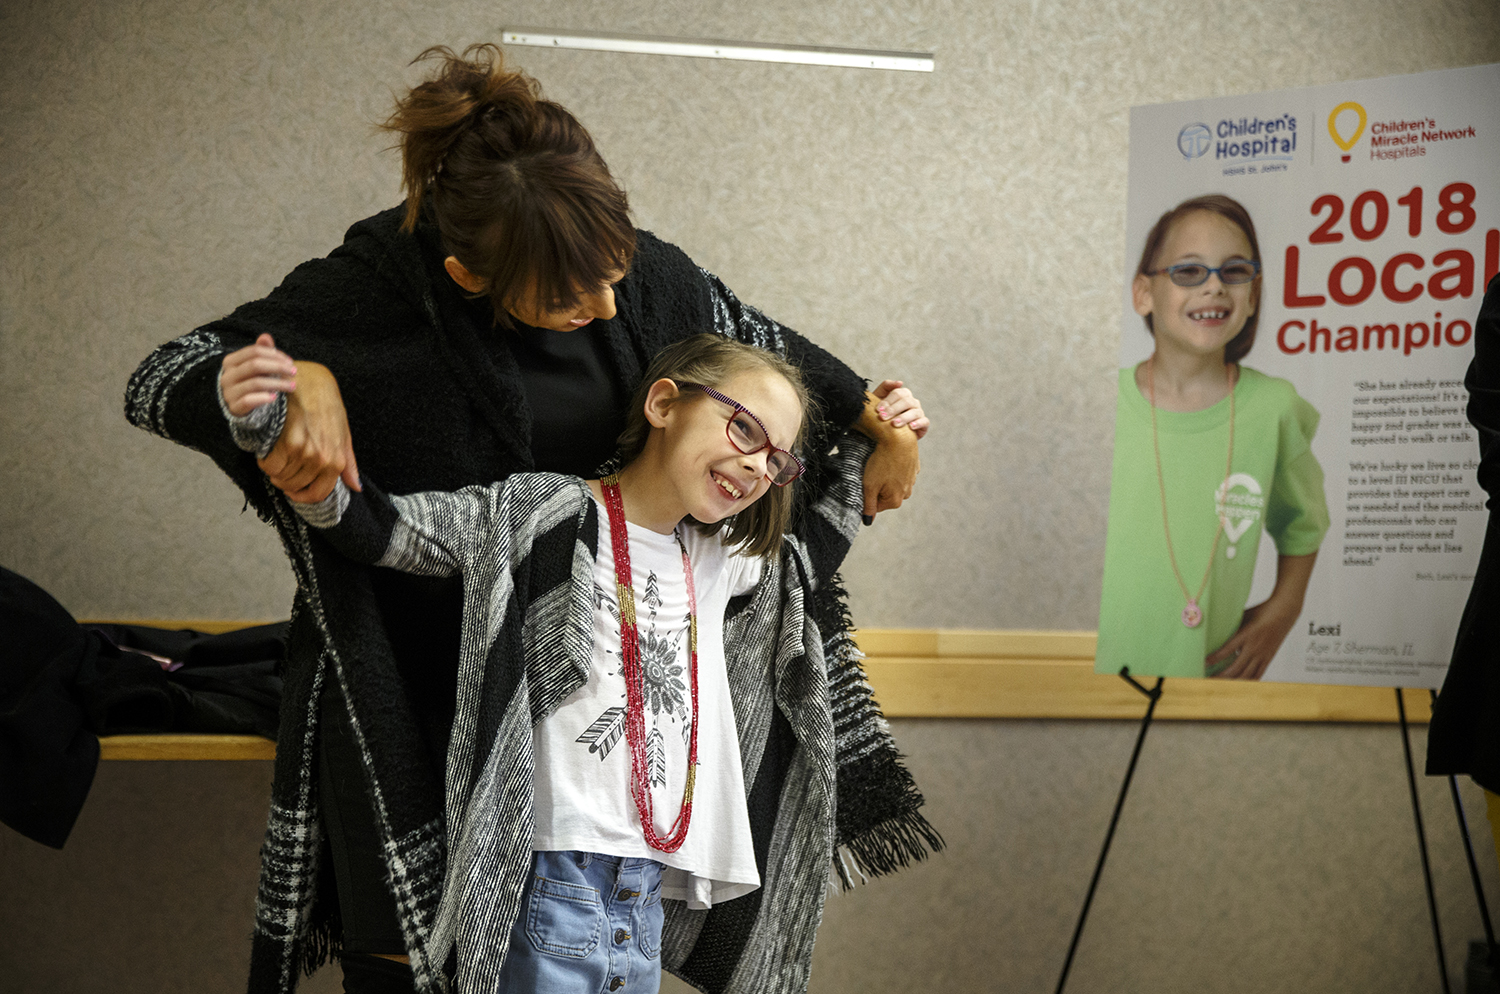 Lexi Sonneborn, 8, gets excited with her mother, Beth Sonneborn, as she is named the 2018 Children's Miracle Network local champion child for HSHS St. John's Children's Hospital during a ceremony, Thursday, Jan. 18, 2018, in Springfield, Ill. In 2017 Lexi had a New Year's Resolution to collect and donate 2000 toys for children having to stay in the hospital like she had and she accomplished her goal donating them to patients at HSHS St. JohnÕs ChildrenÕs Hospital. Lexi's prognosis is extremely positive despite being born prematurely at only 27 weeks gestation in 2009 with cerebral palsy, hydrocephalus, vision problems, developmental delays, cerebellar hypoplasia and seizures. She spent the first three months of her life in the neonatal intensive care unit at the hospital. [Justin L. Fowler/The State Journal-Register]